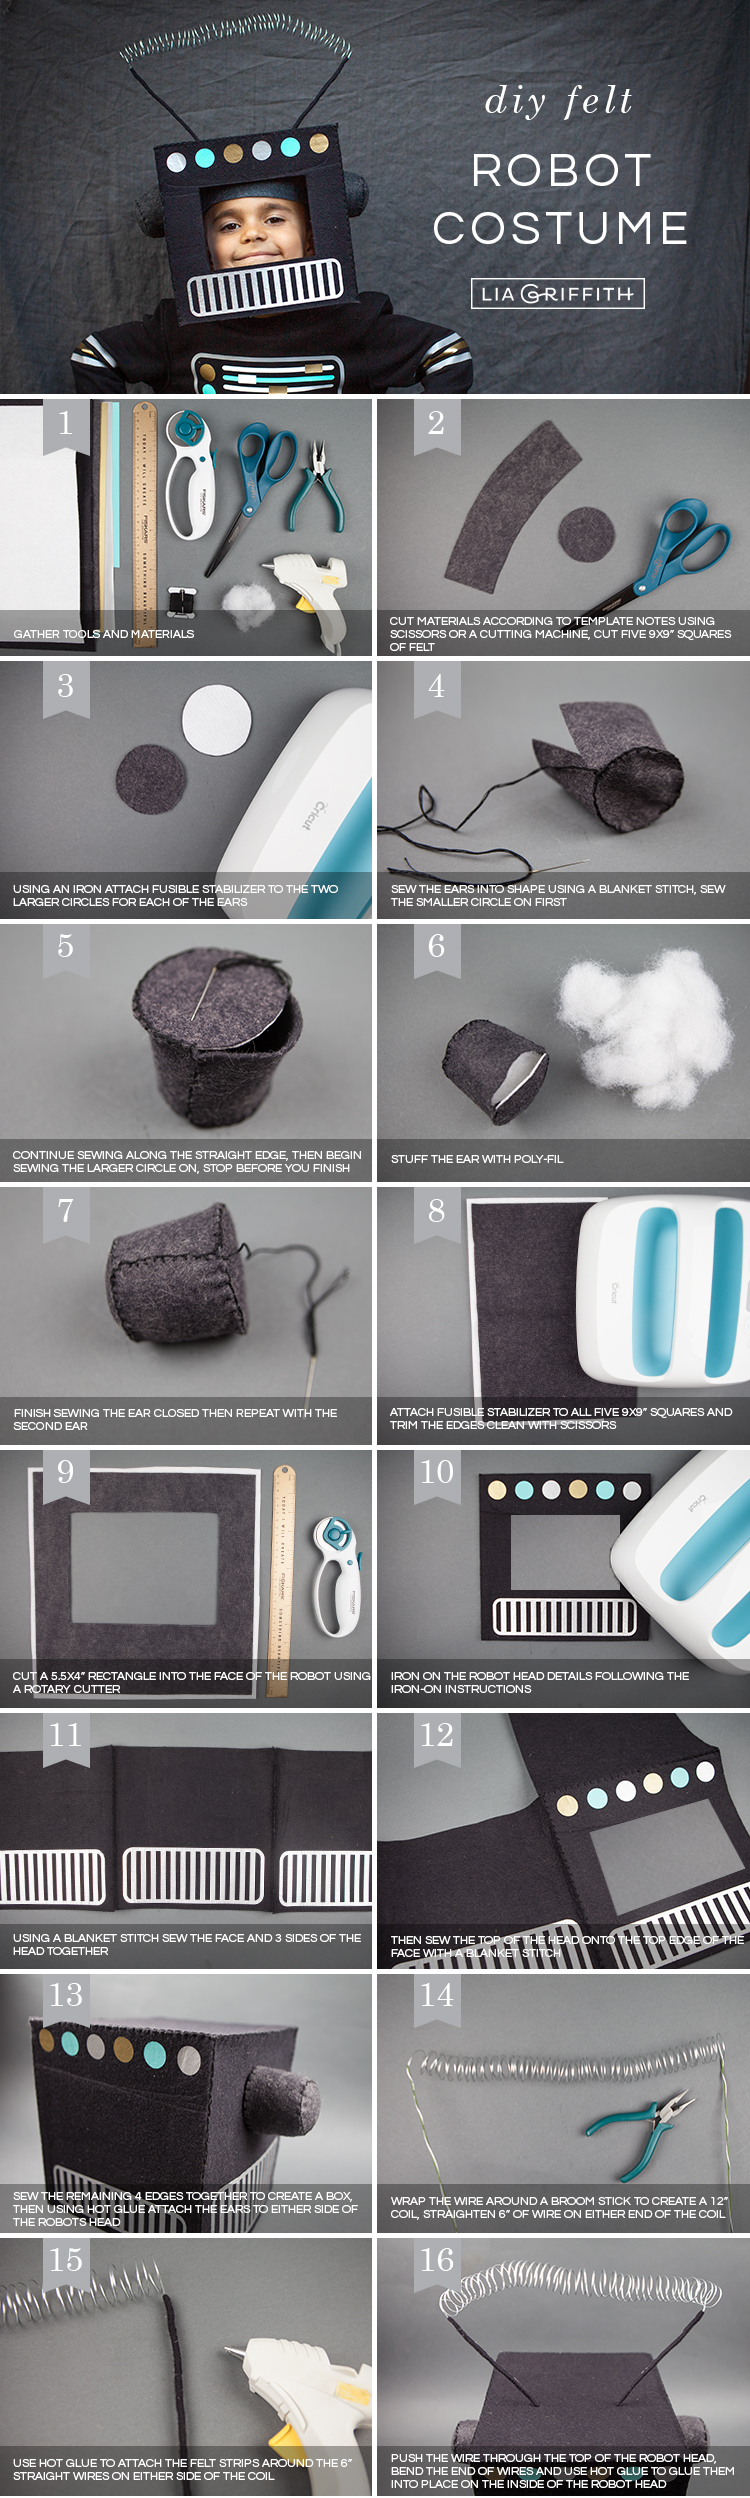 Photo tutorial for DIY robot costume by Lia Griffith